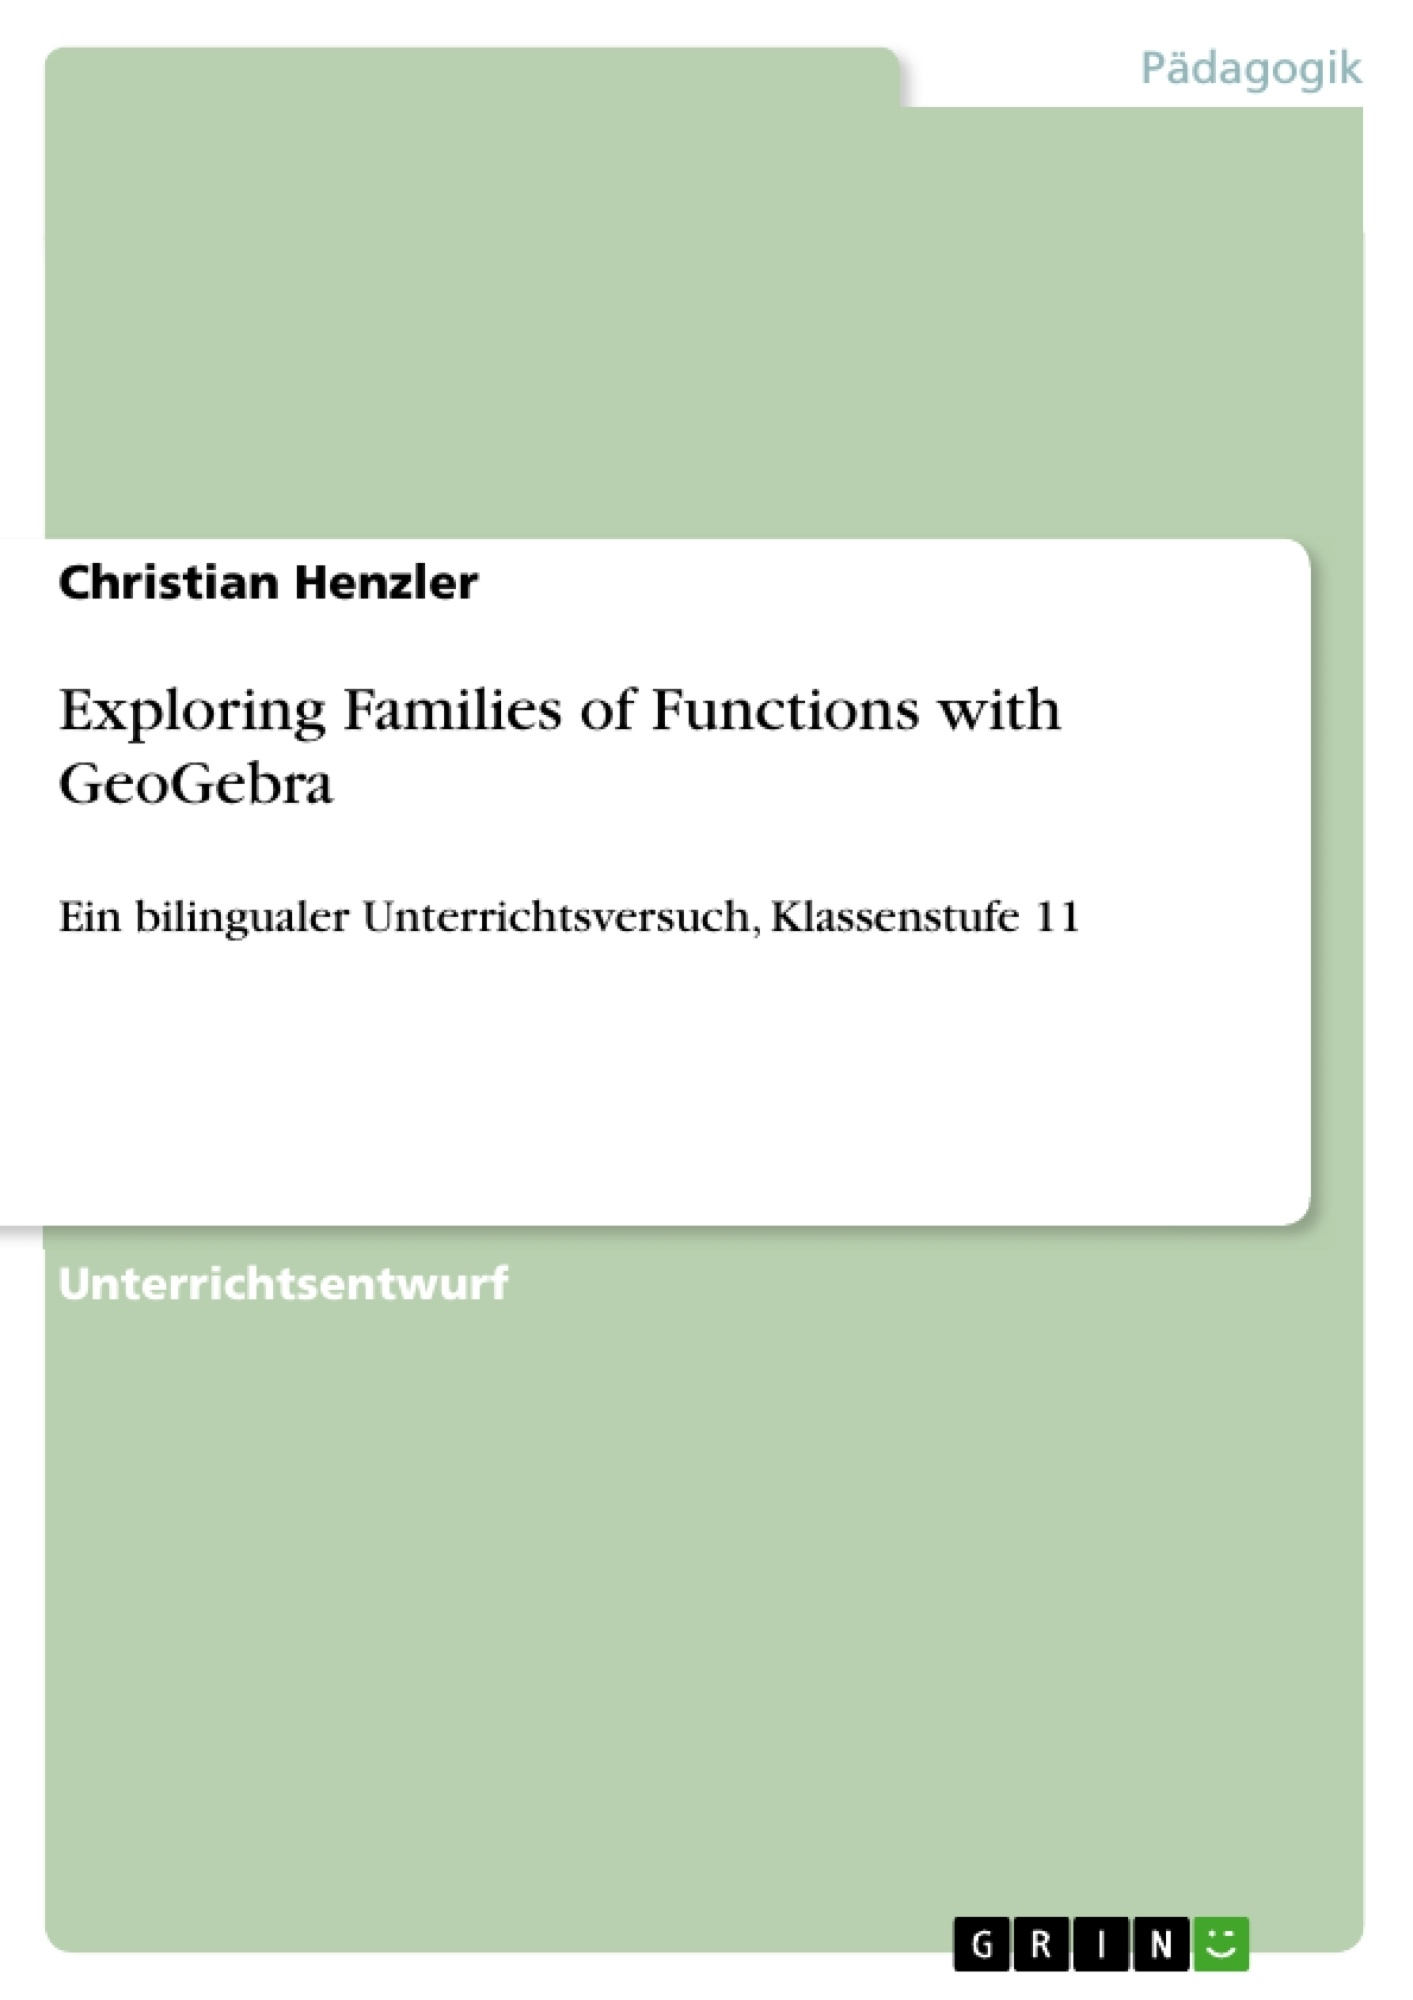 Titel: Exploring Families of Functions with GeoGebra